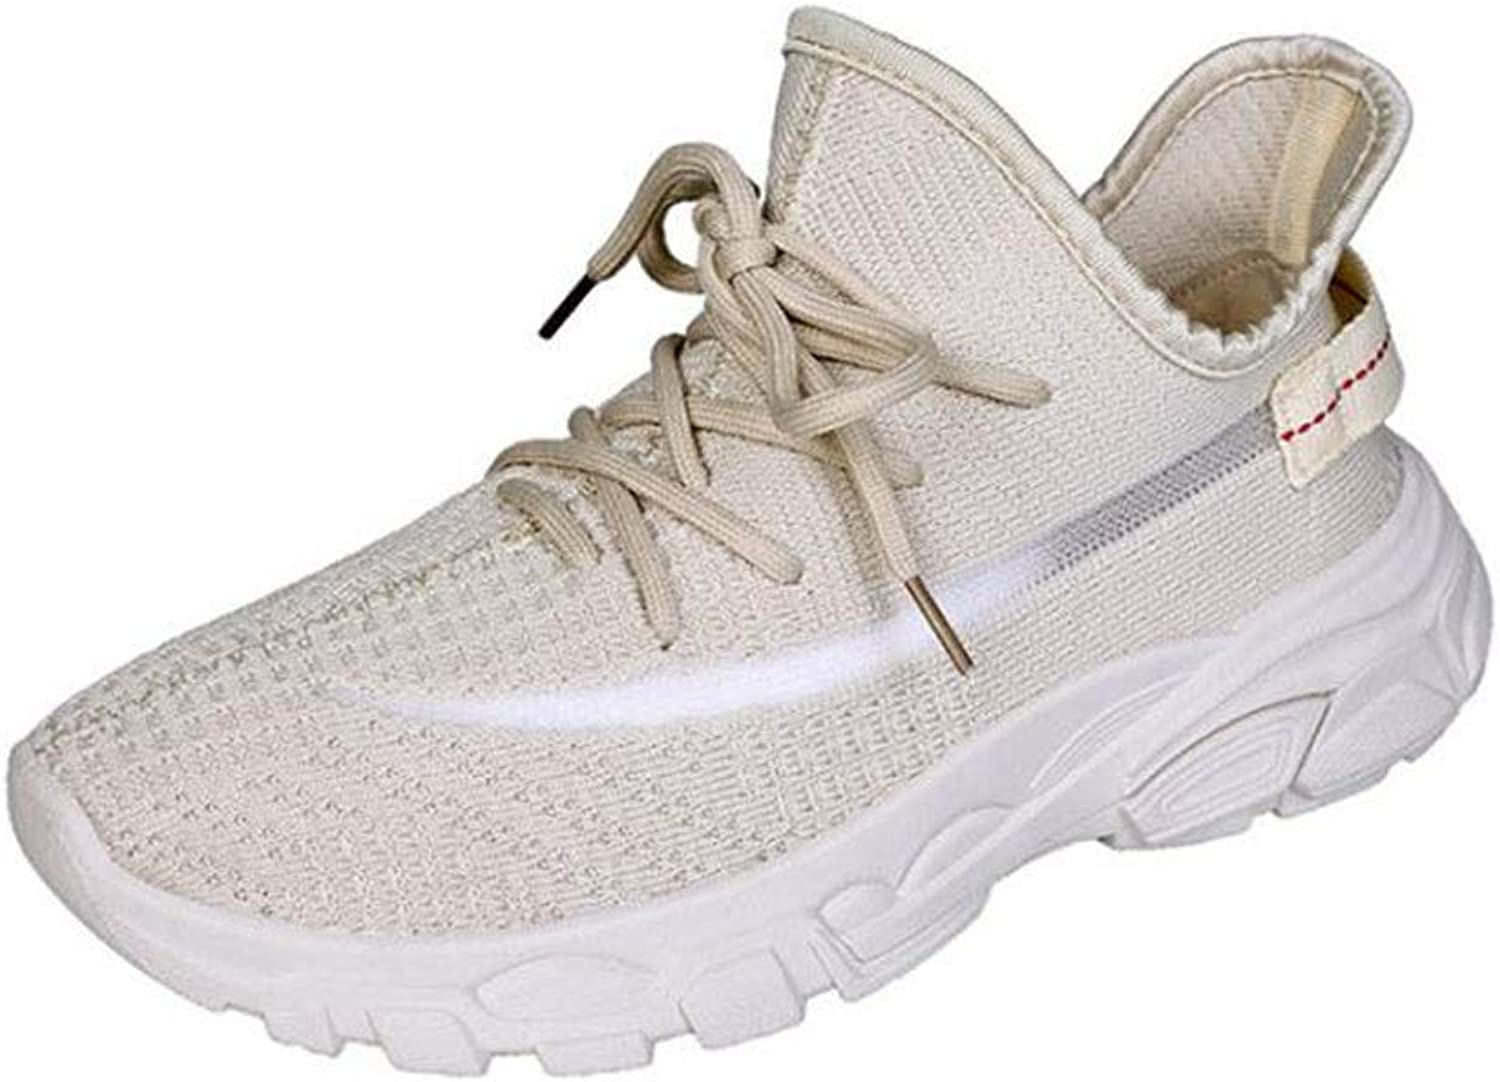 Women's Sneakers Running Running shoes Womens Lightweight Walking shoes Breathable Mesh Tennis shoes Nursing shoes (color   Beige, Size   6 US)